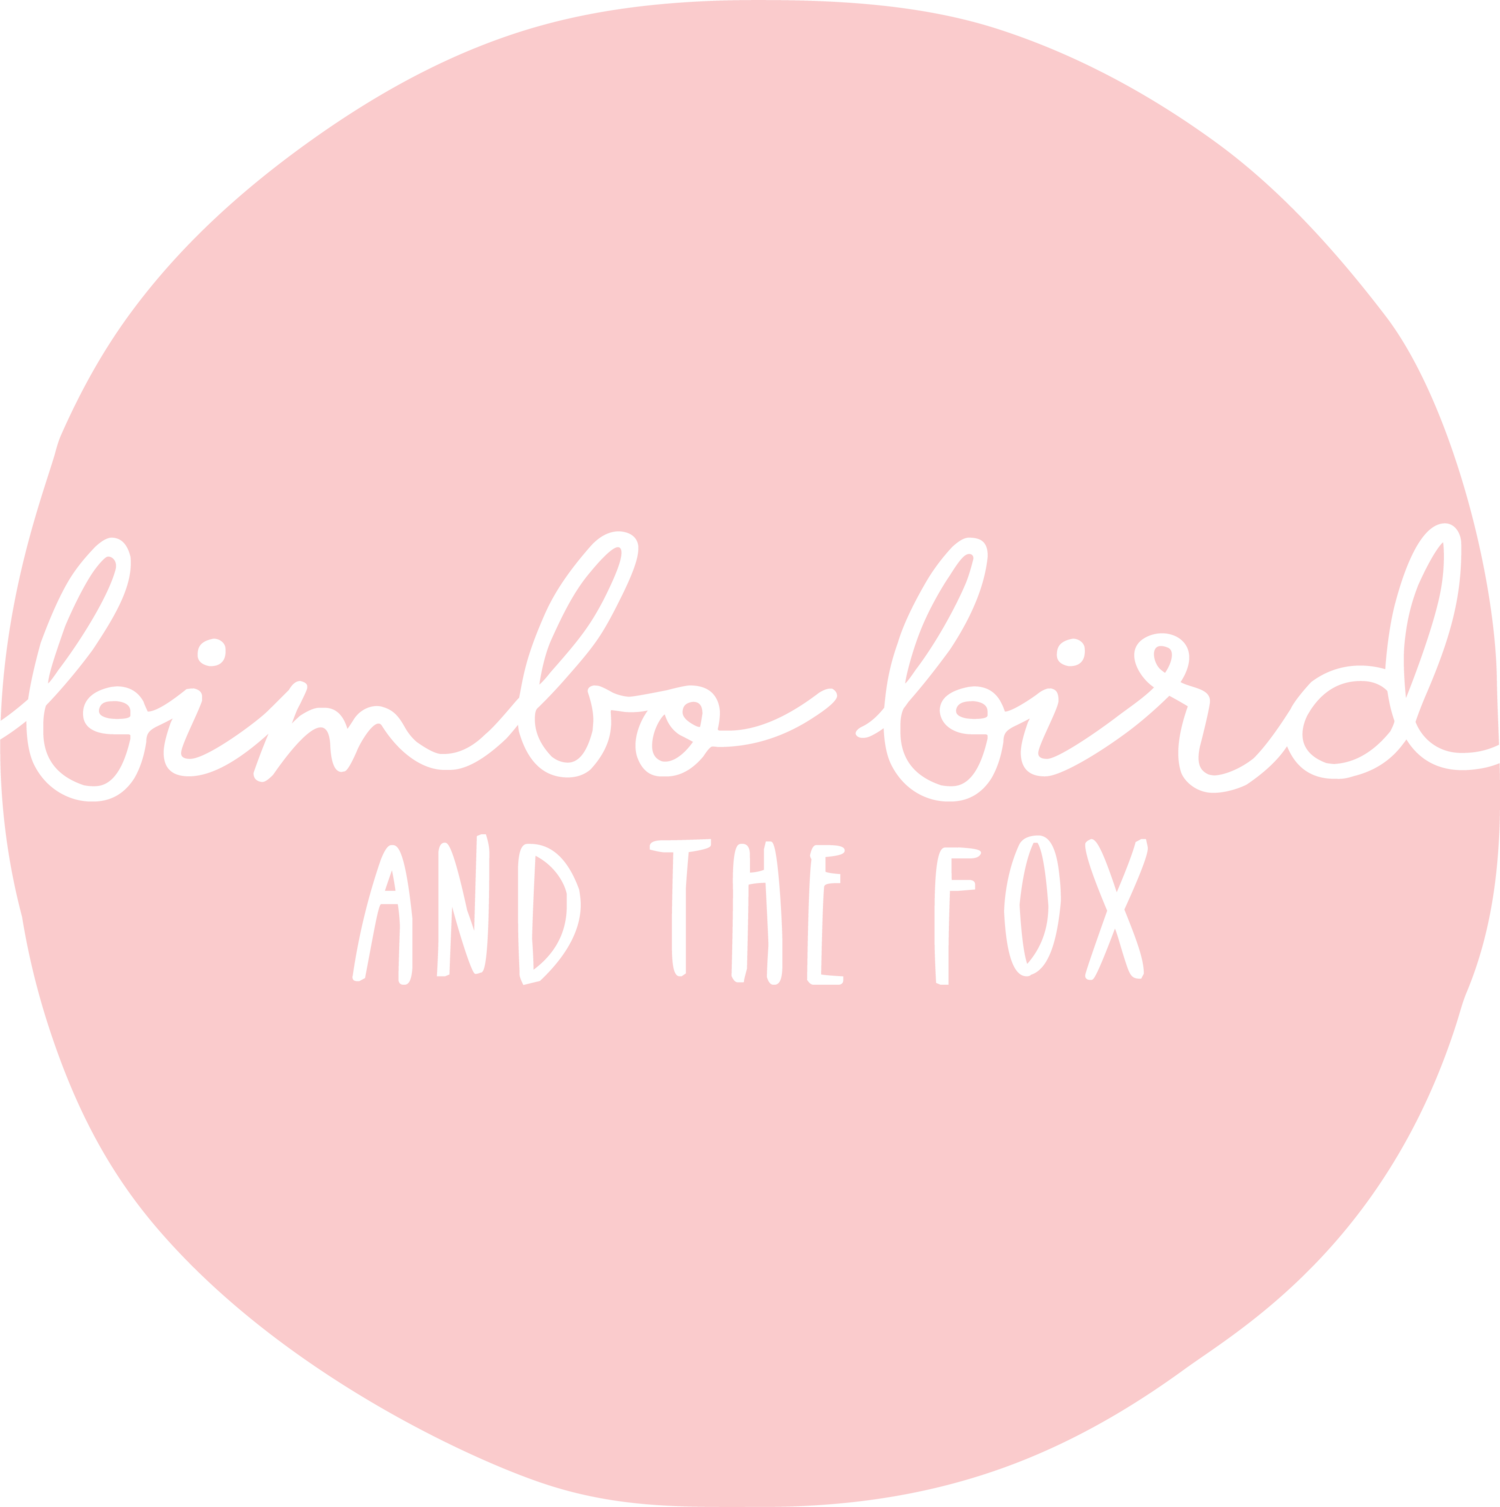 bimbo bird & the fox